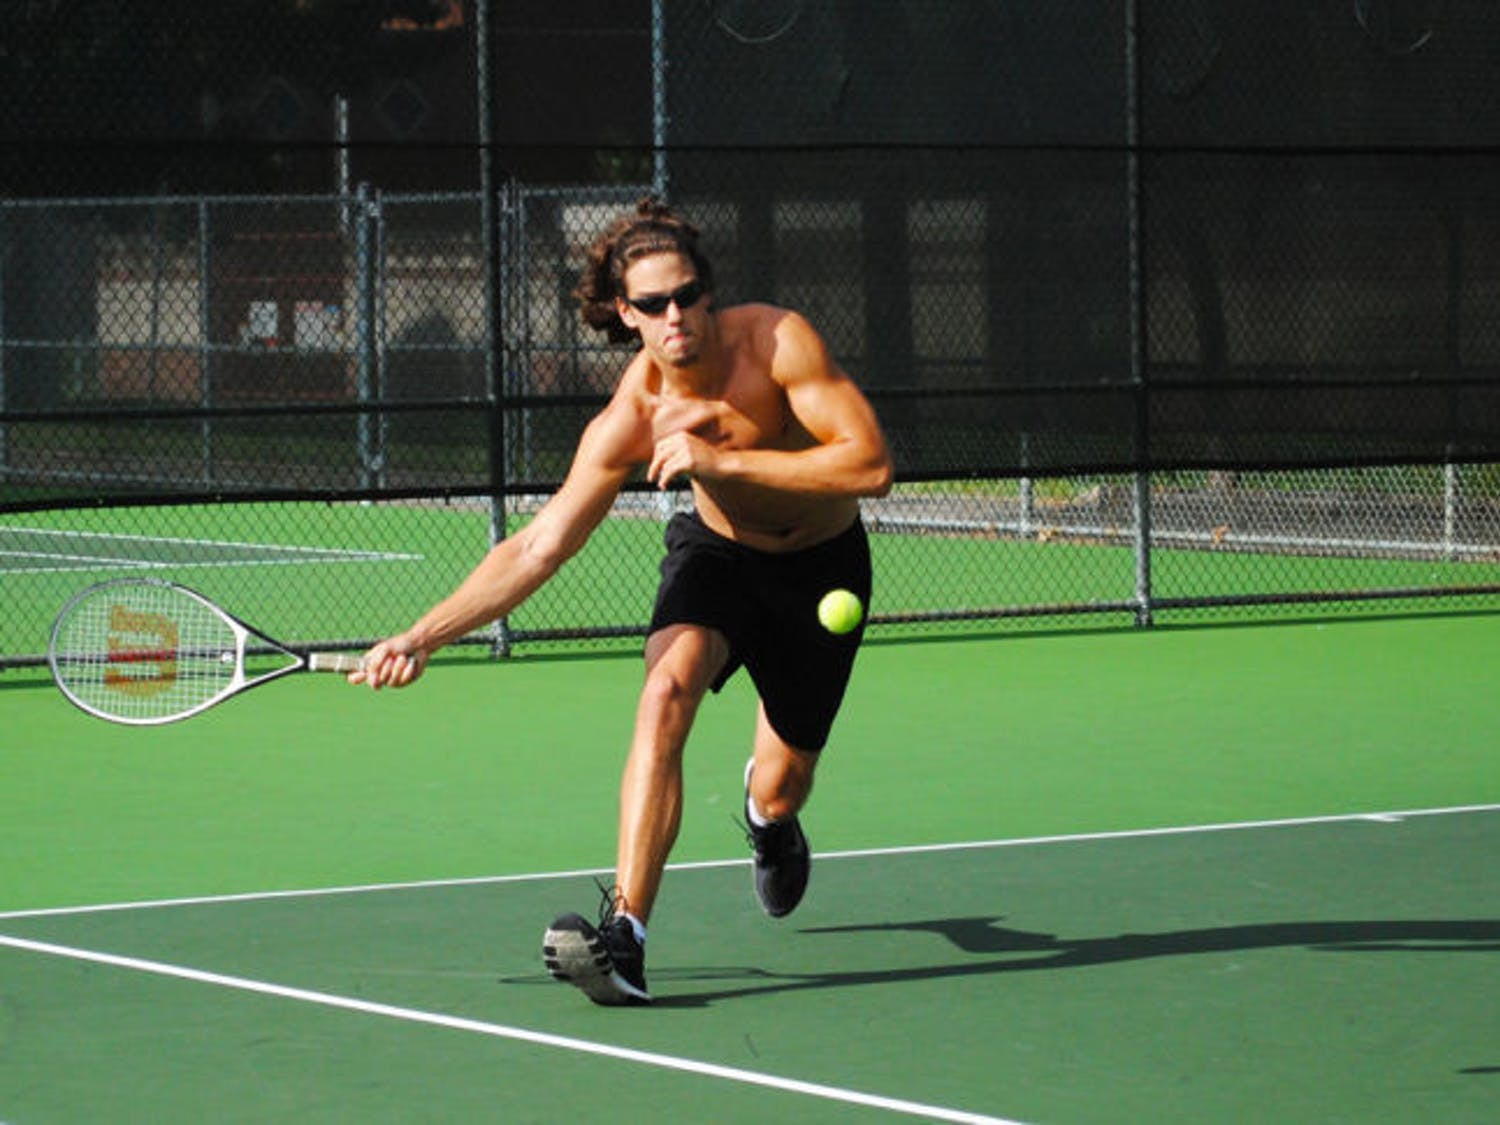 Aaron Crews, a 19-year-old UF health sciences sophomore plays tennis at the Southwest Recreational Facilities on Monday afternoon.